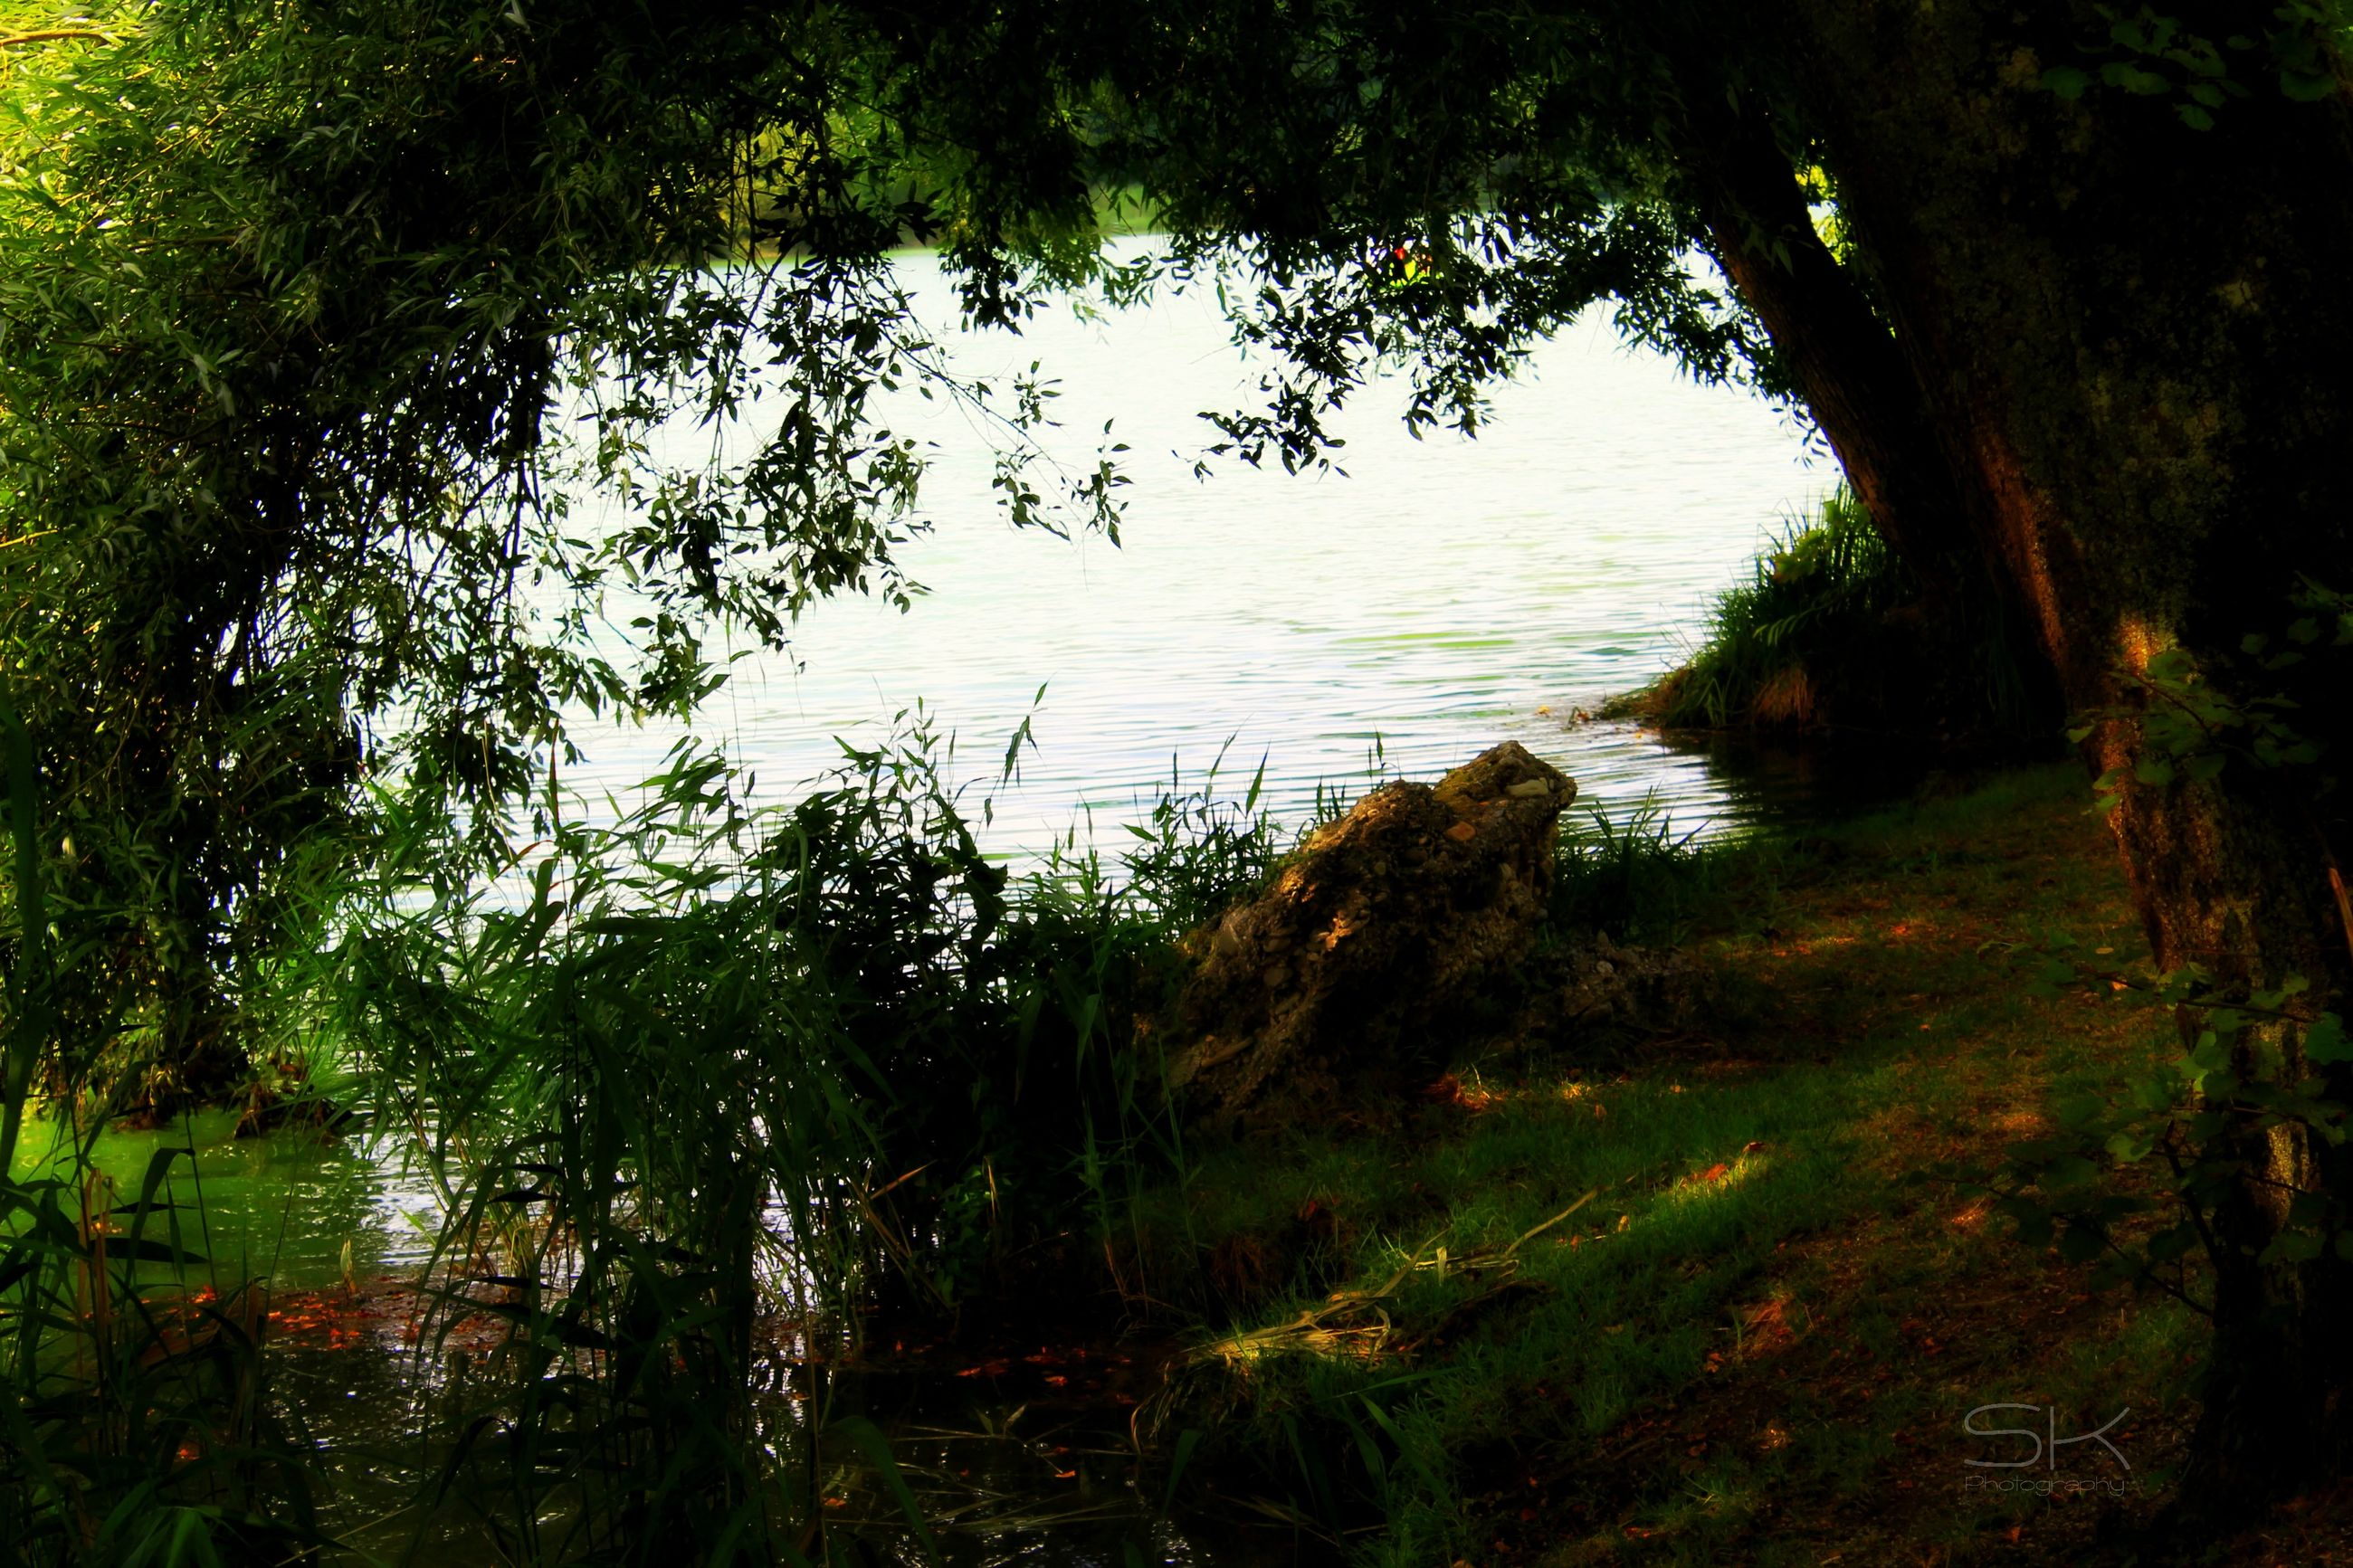 water, tree, tranquility, tranquil scene, nature, beauty in nature, scenics, growth, lake, reflection, forest, green color, plant, idyllic, non-urban scene, grass, branch, day, no people, river